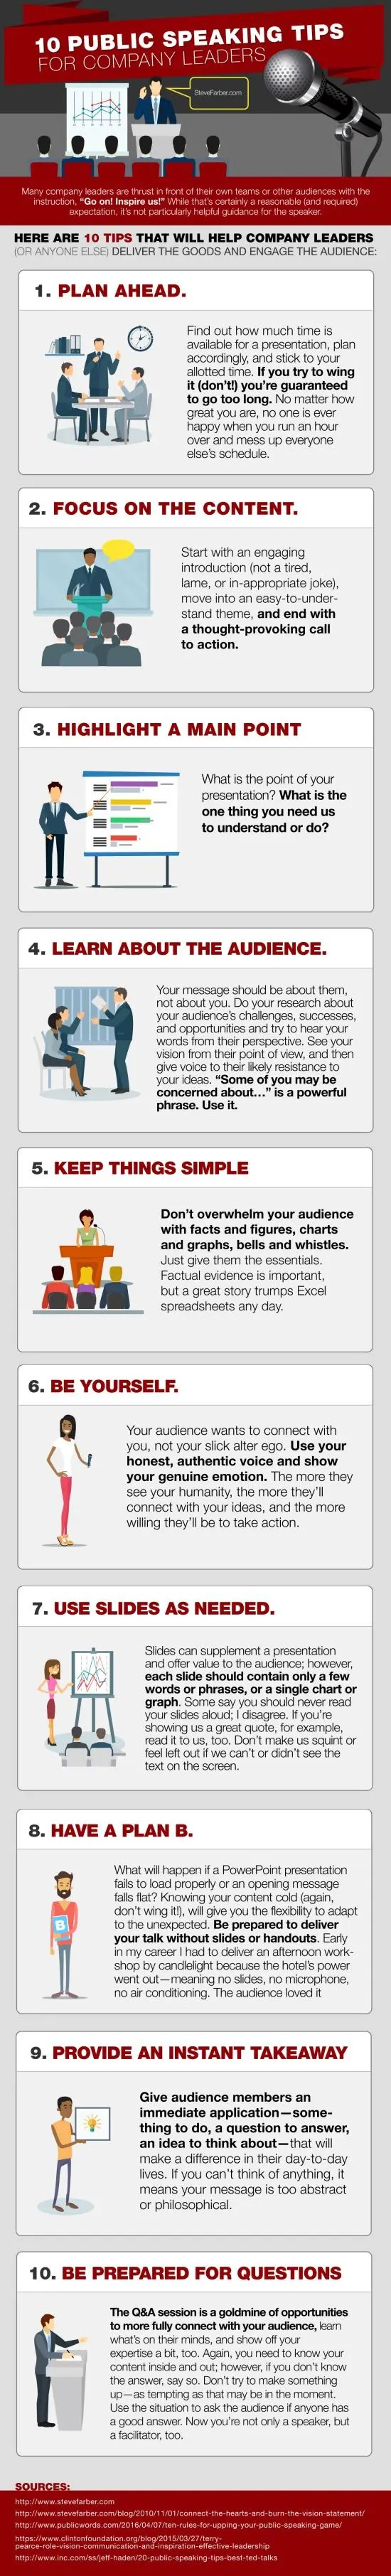 Public Tips 10 Public Speaking Tips For Company Leaders Infographic